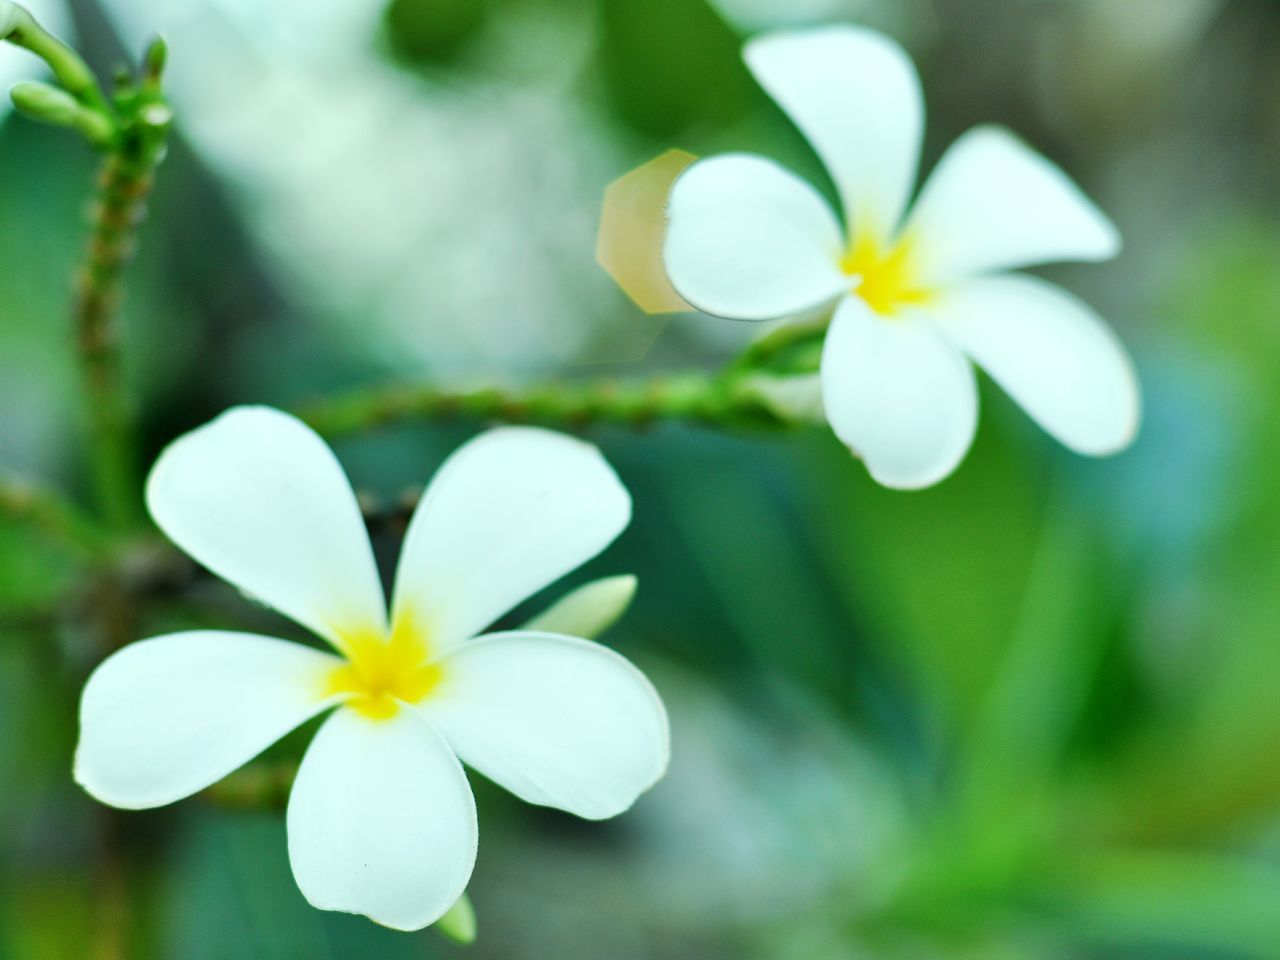 flower, petal, growth, frangipani, nature, beauty in nature, white color, fragility, blooming, flower head, freshness, plant, close-up, no people, outdoors, day, periwinkle